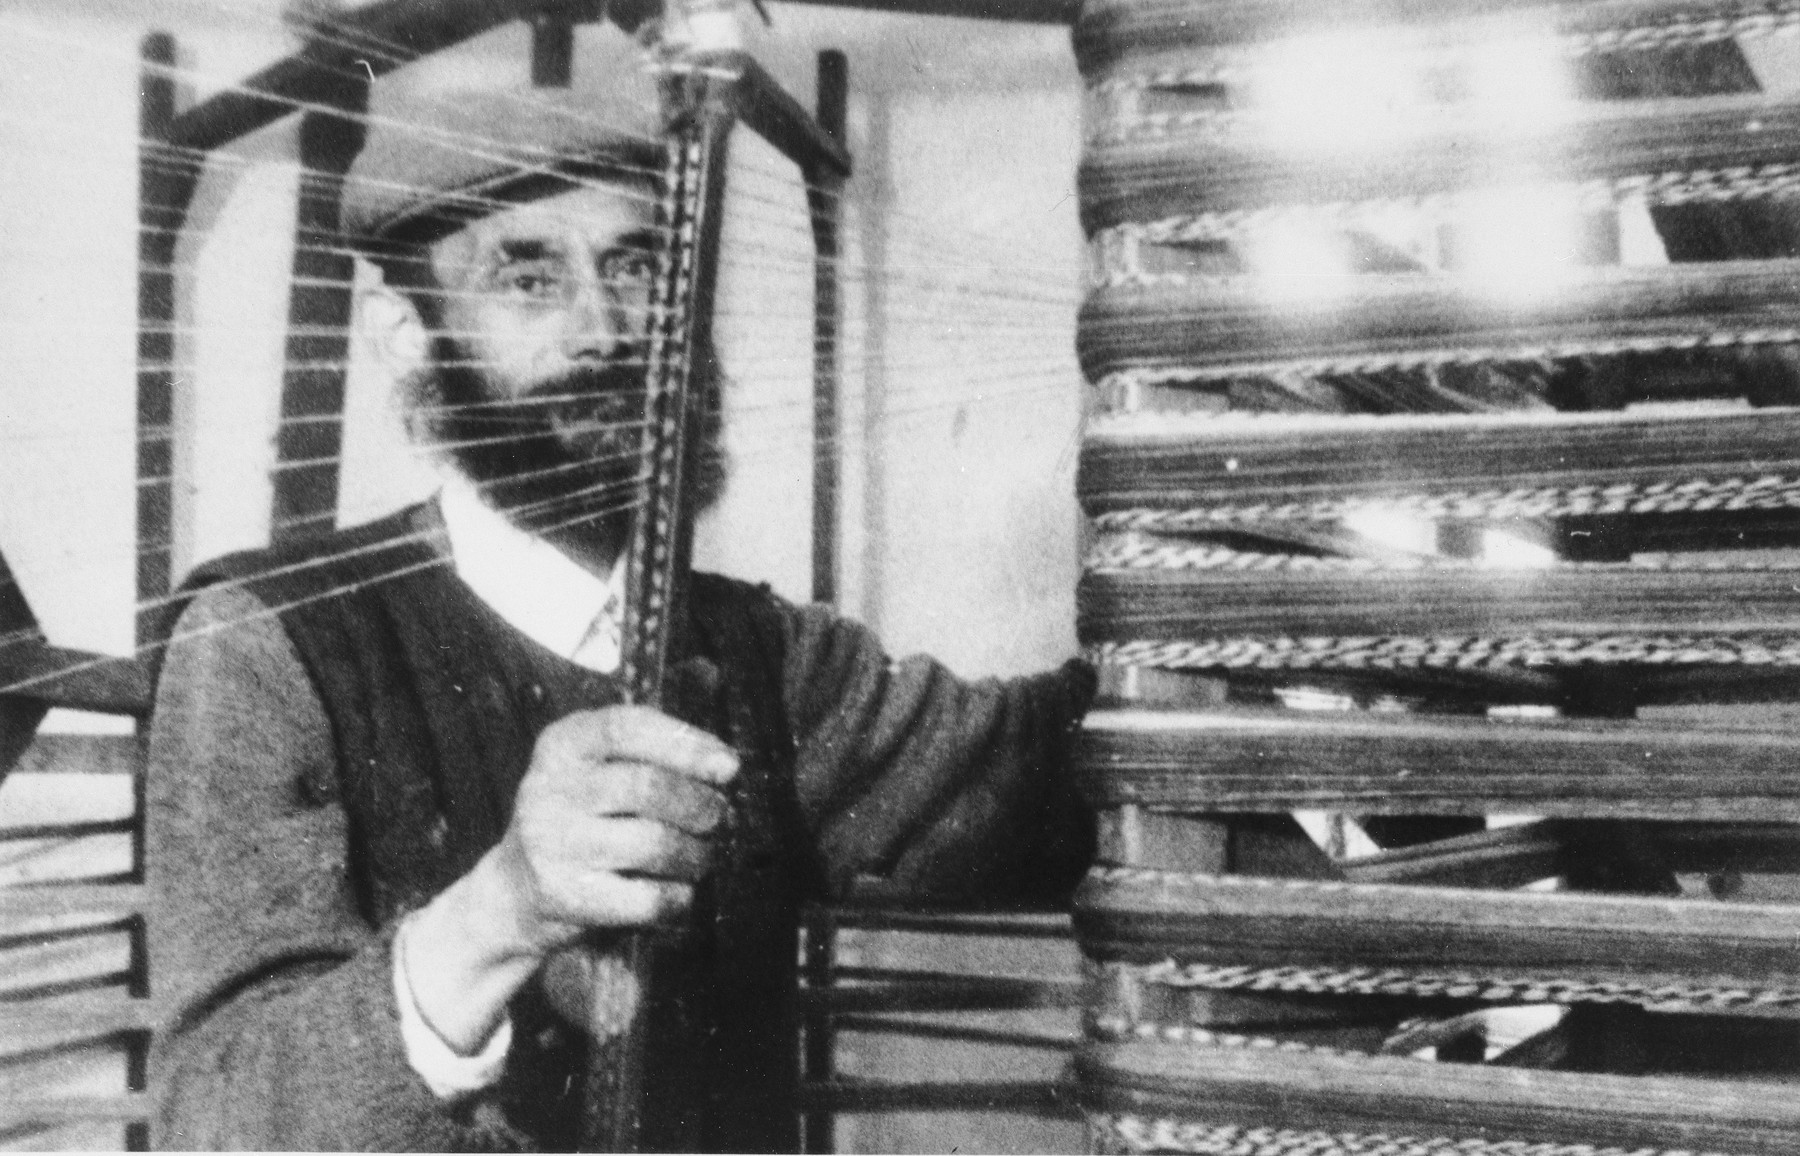 A Jewish man operates a loom in an unidentified ghetto.